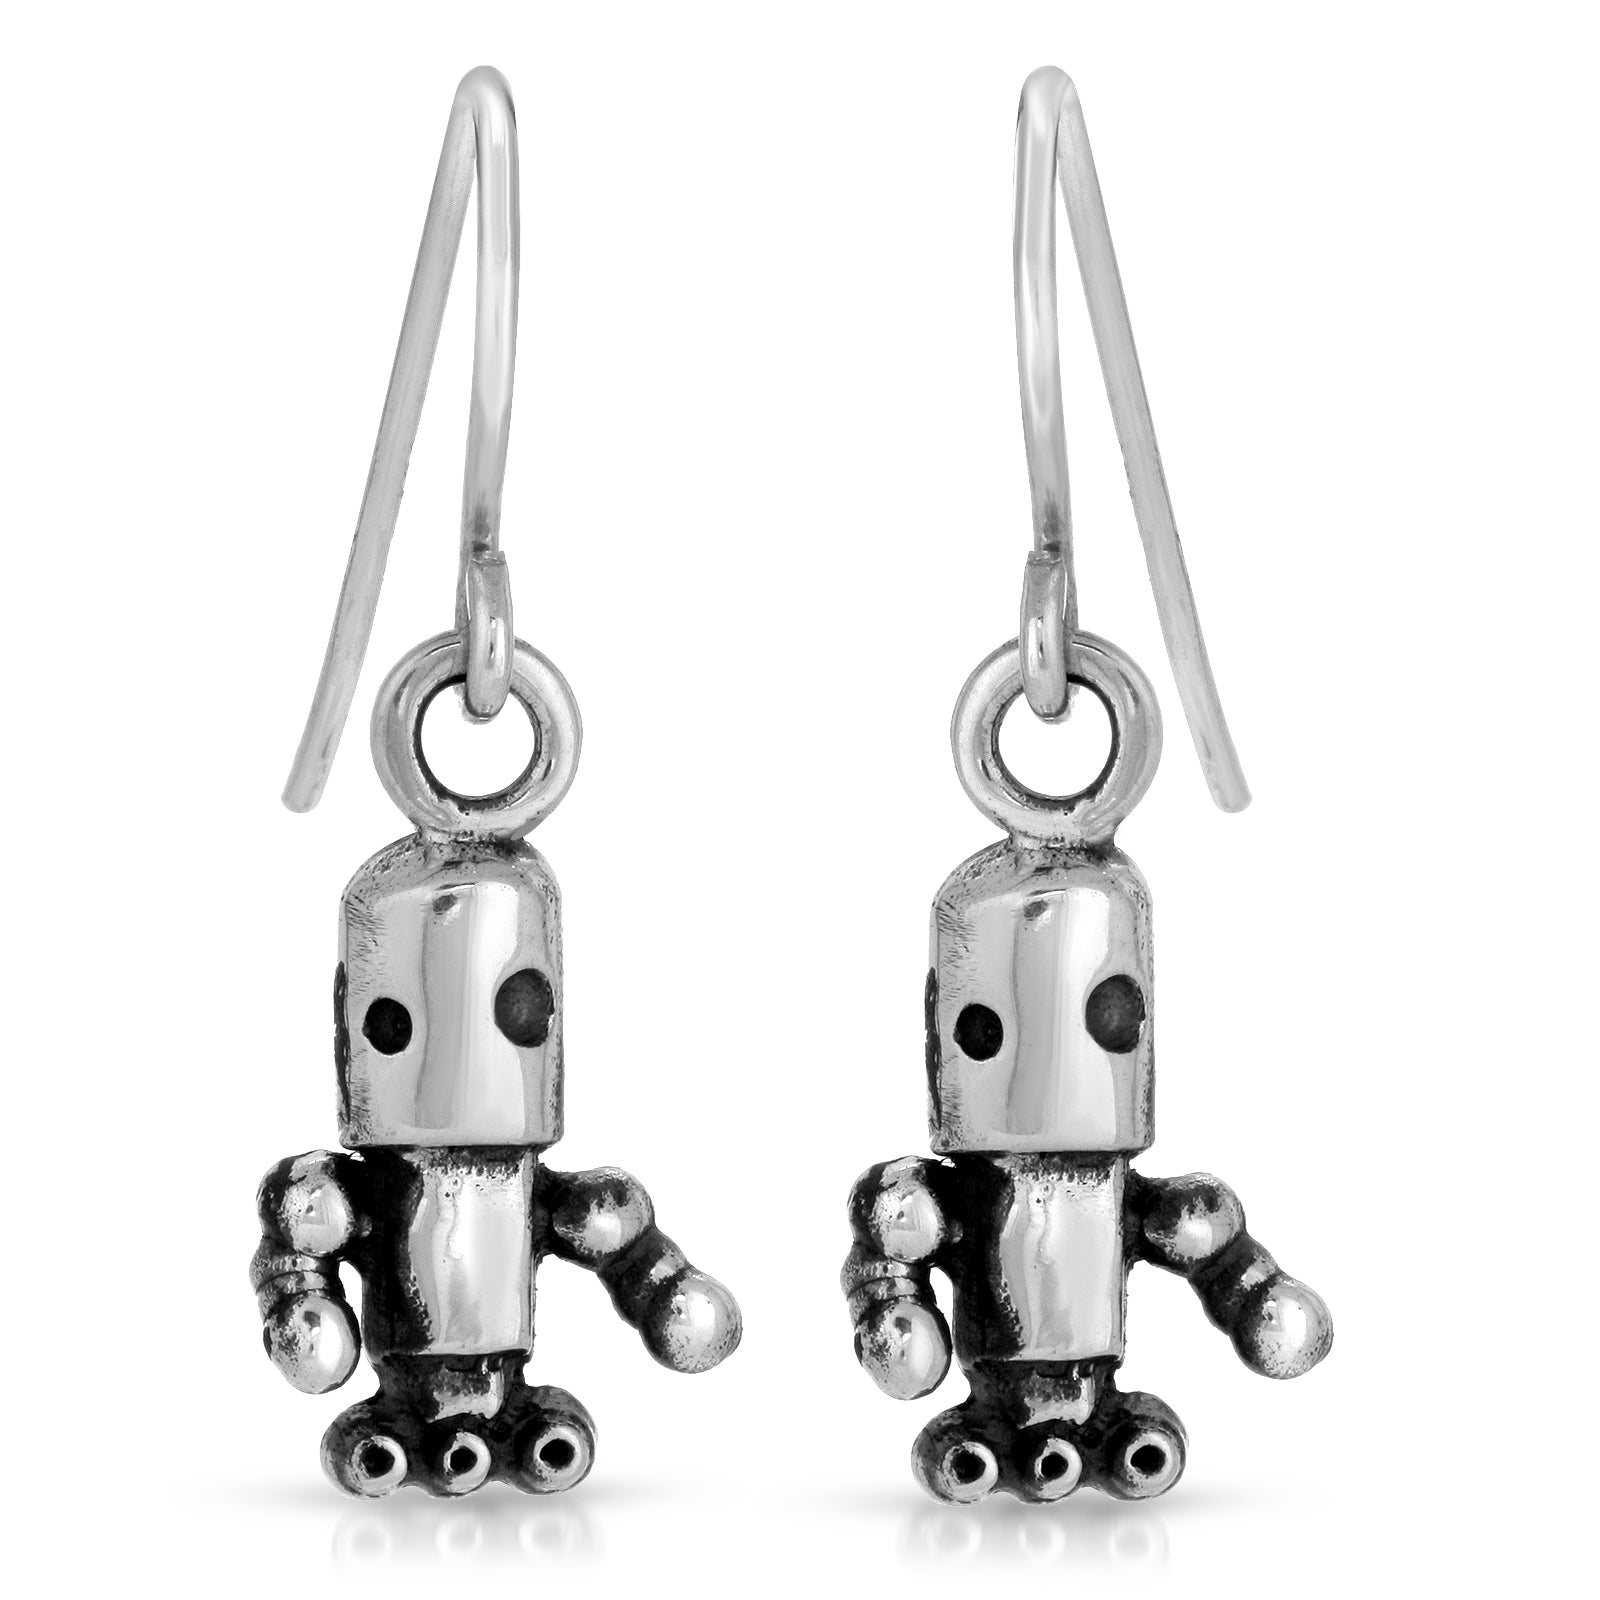 The W Brothers Area 51 earrings, robot earrings, Area 51 Collection premium Grade A silver Astro Bot Dangle Hoop Earrings crafted with the highest purity. Perfect fashion accessory for men and women, shop at www.thewbros.com